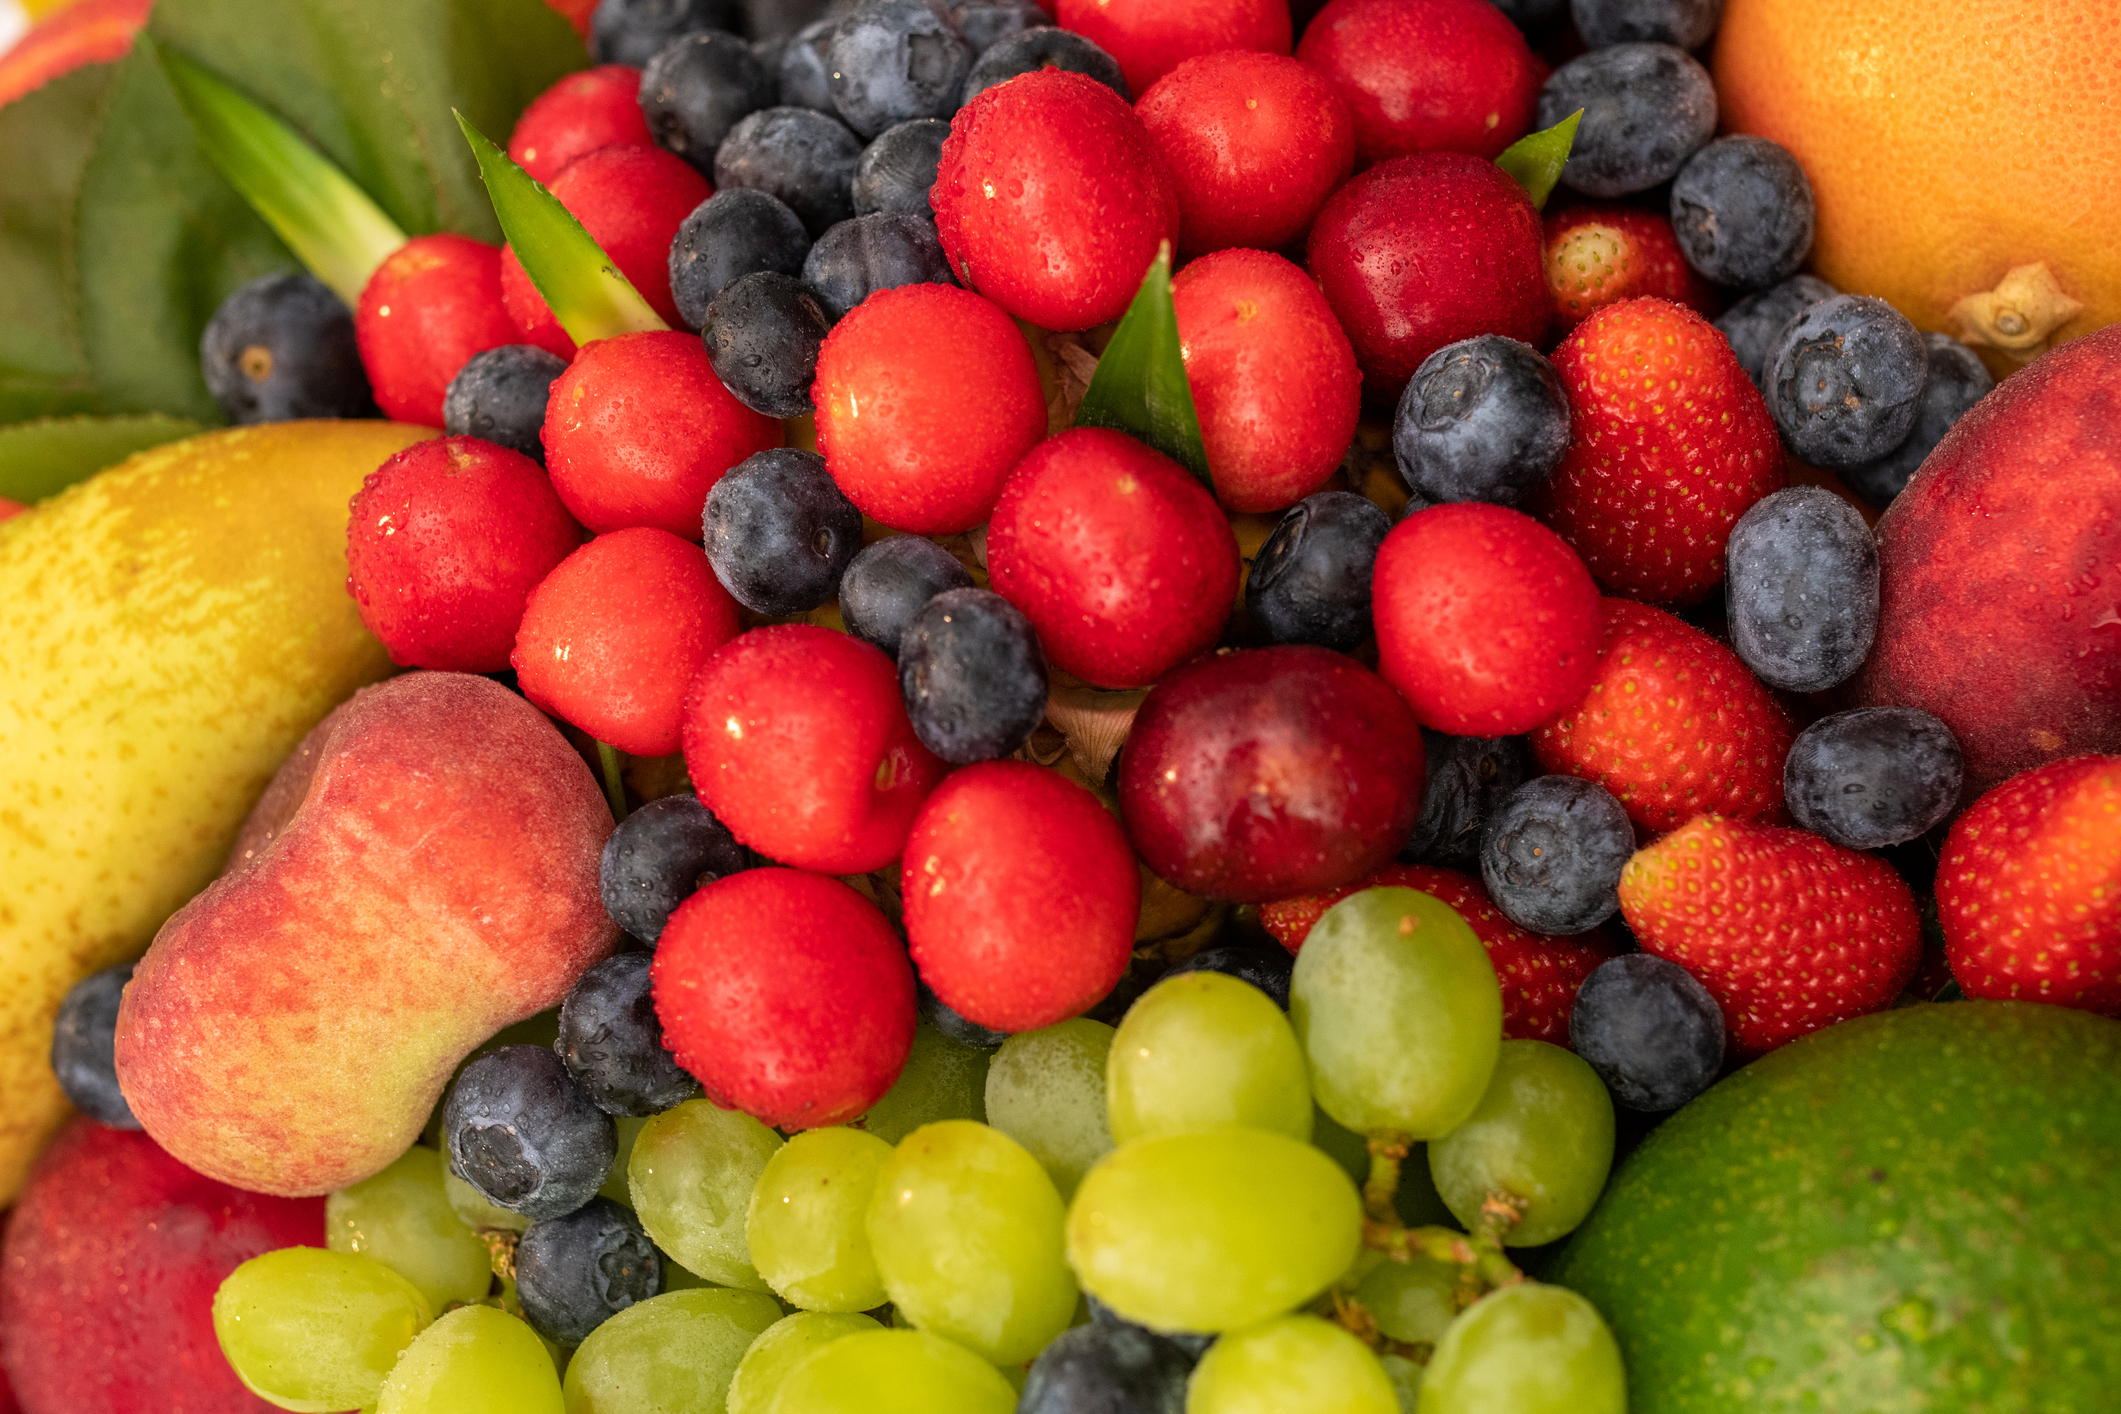 Macro view of different kind of ripe, fresh, colourful fruit, full frame.